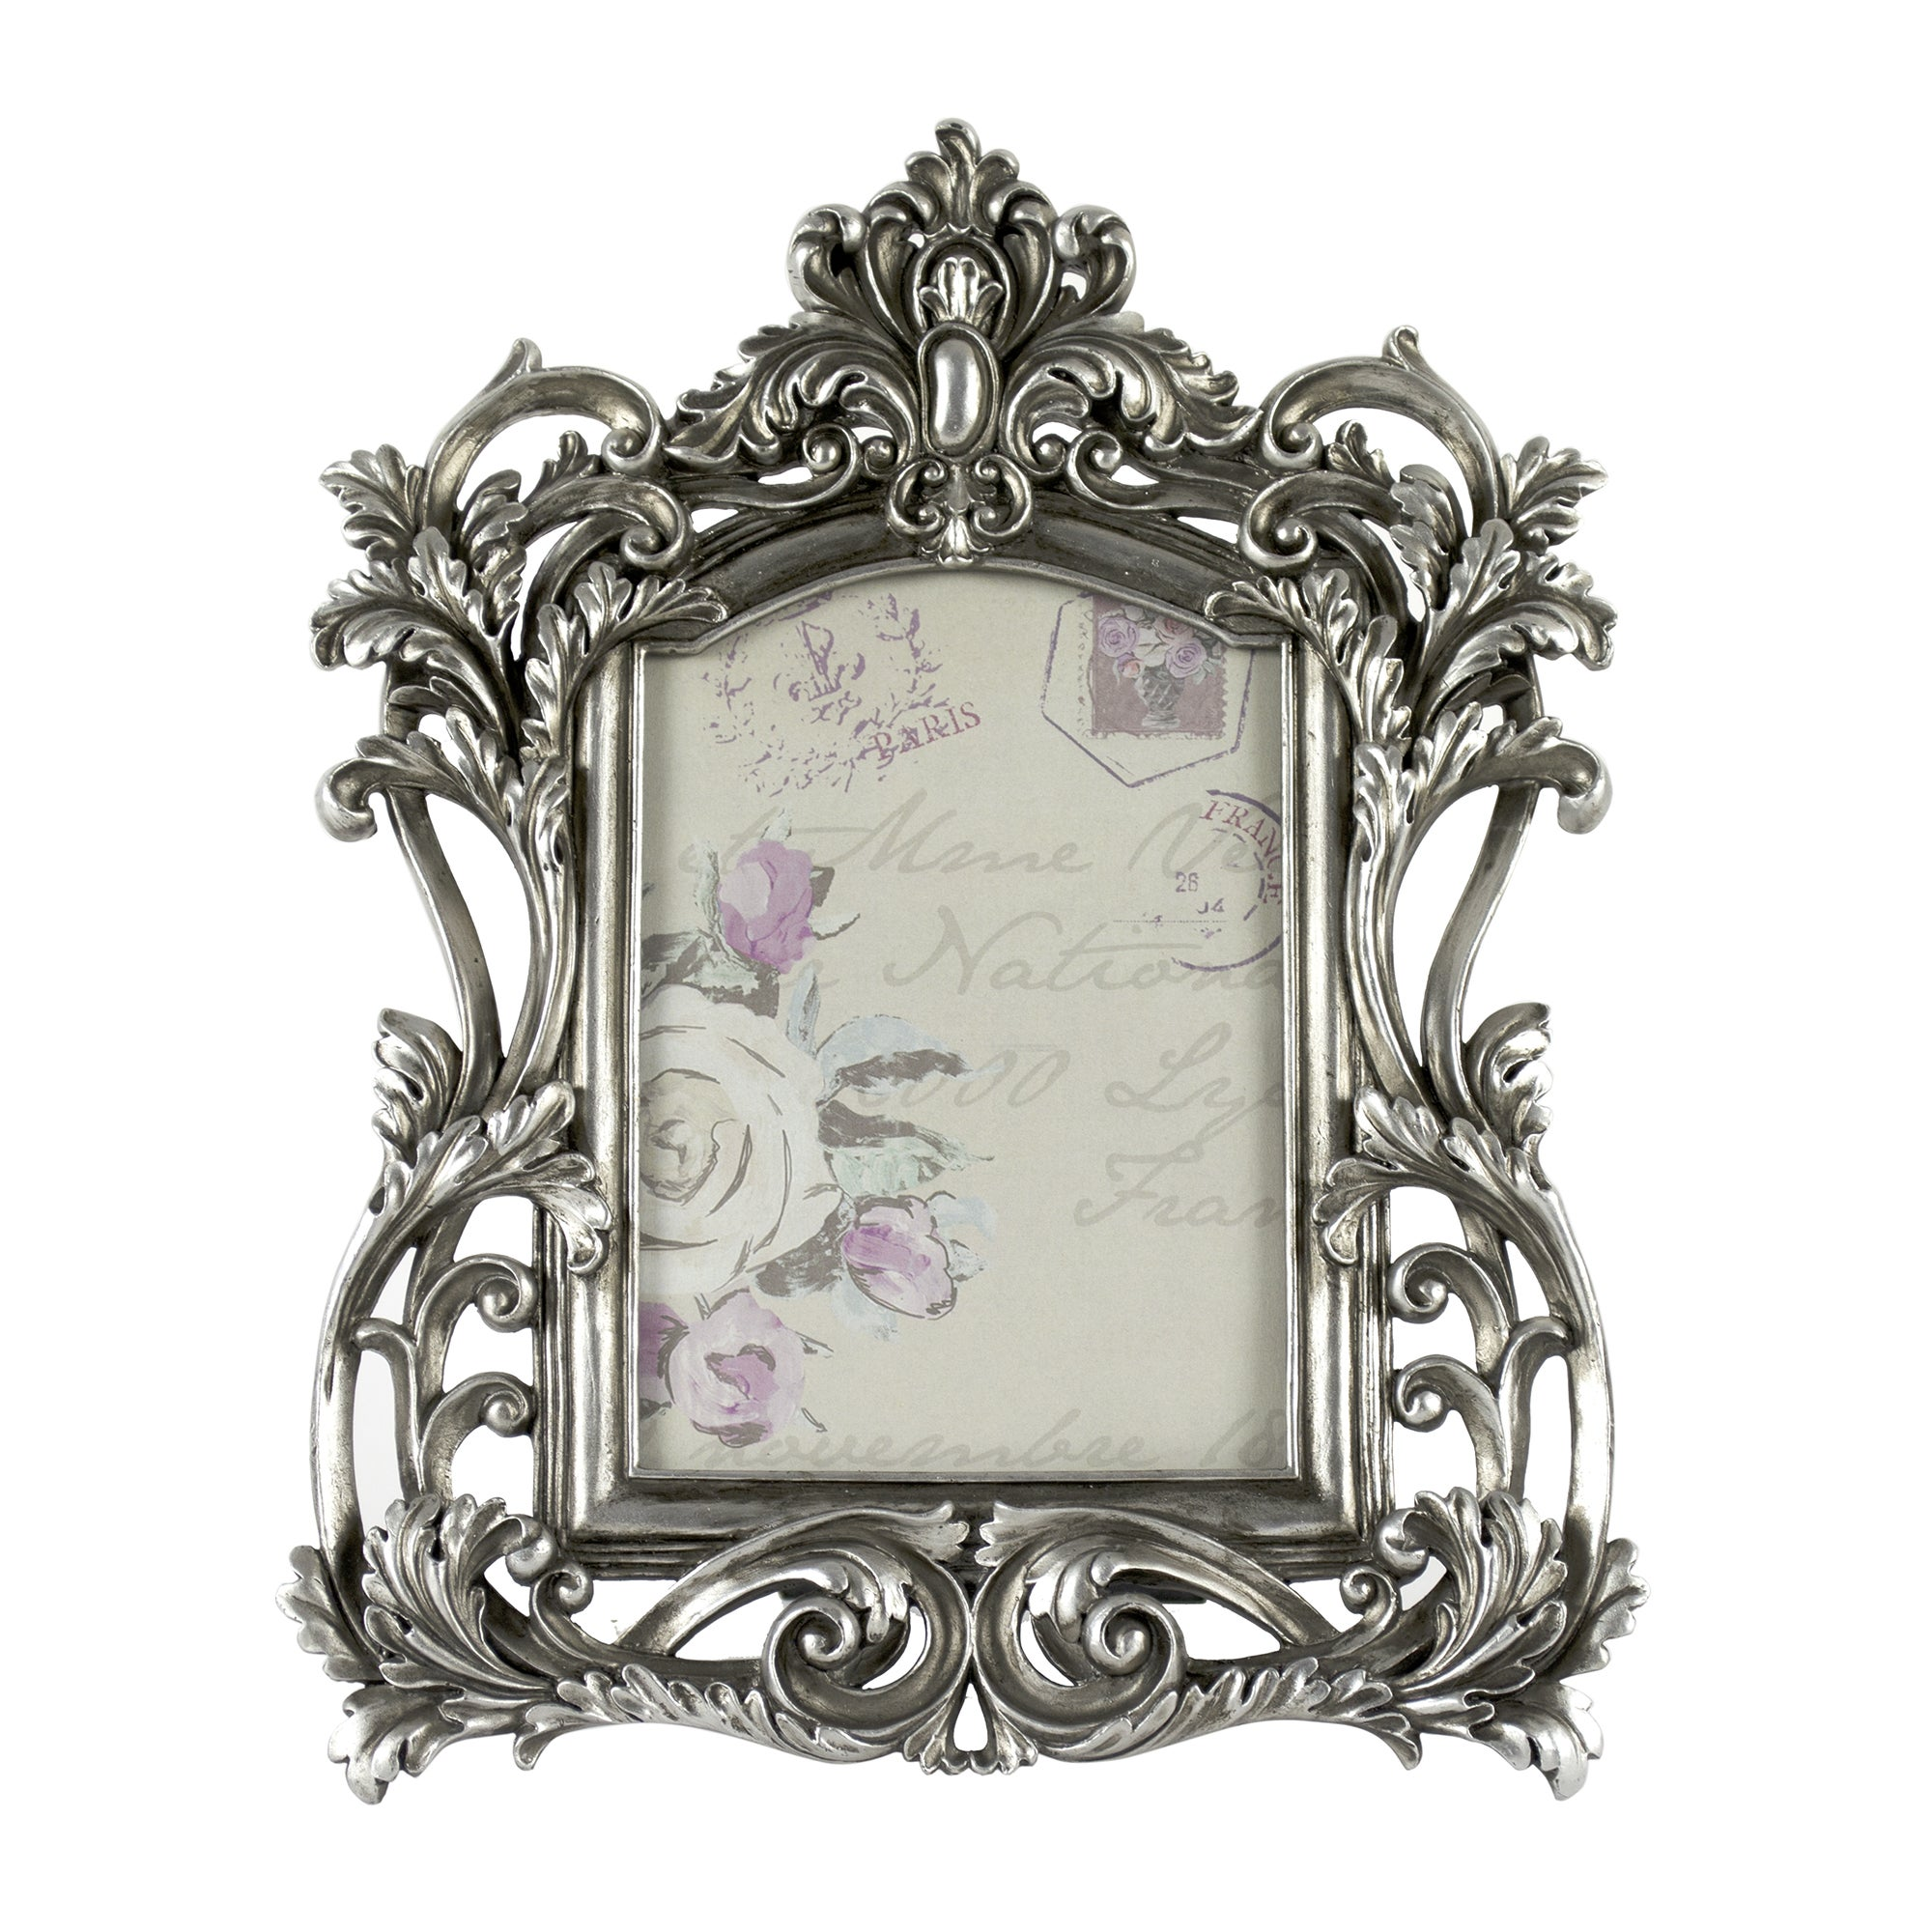 Maison Chique Collection Silver Ornate Frame